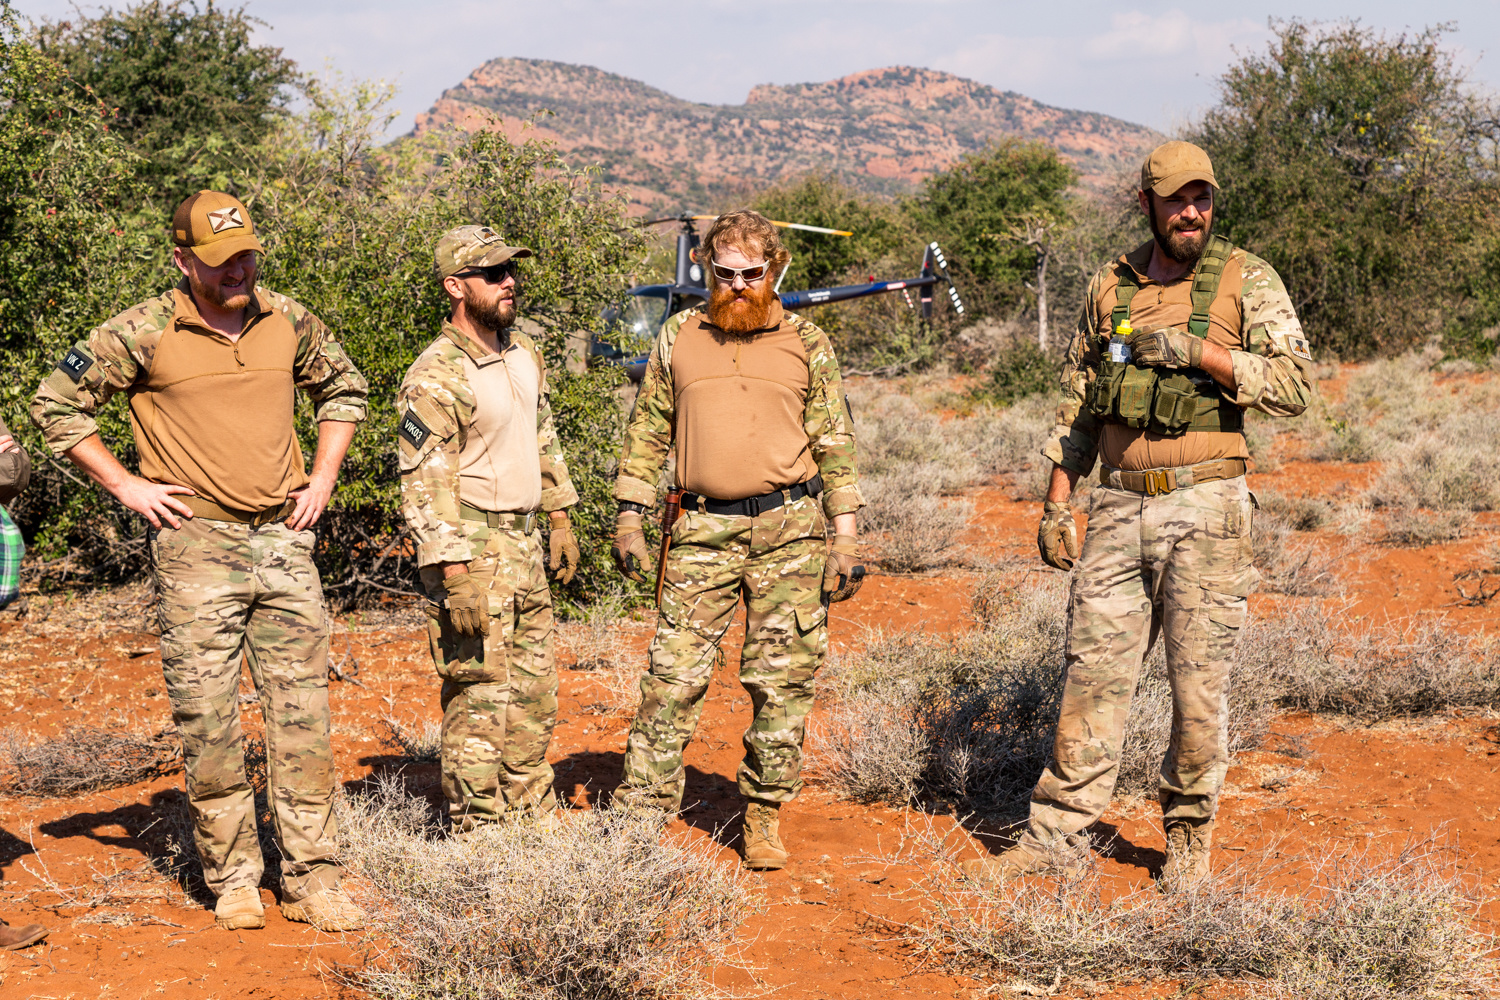 Conservation photography with US veterans in Africa